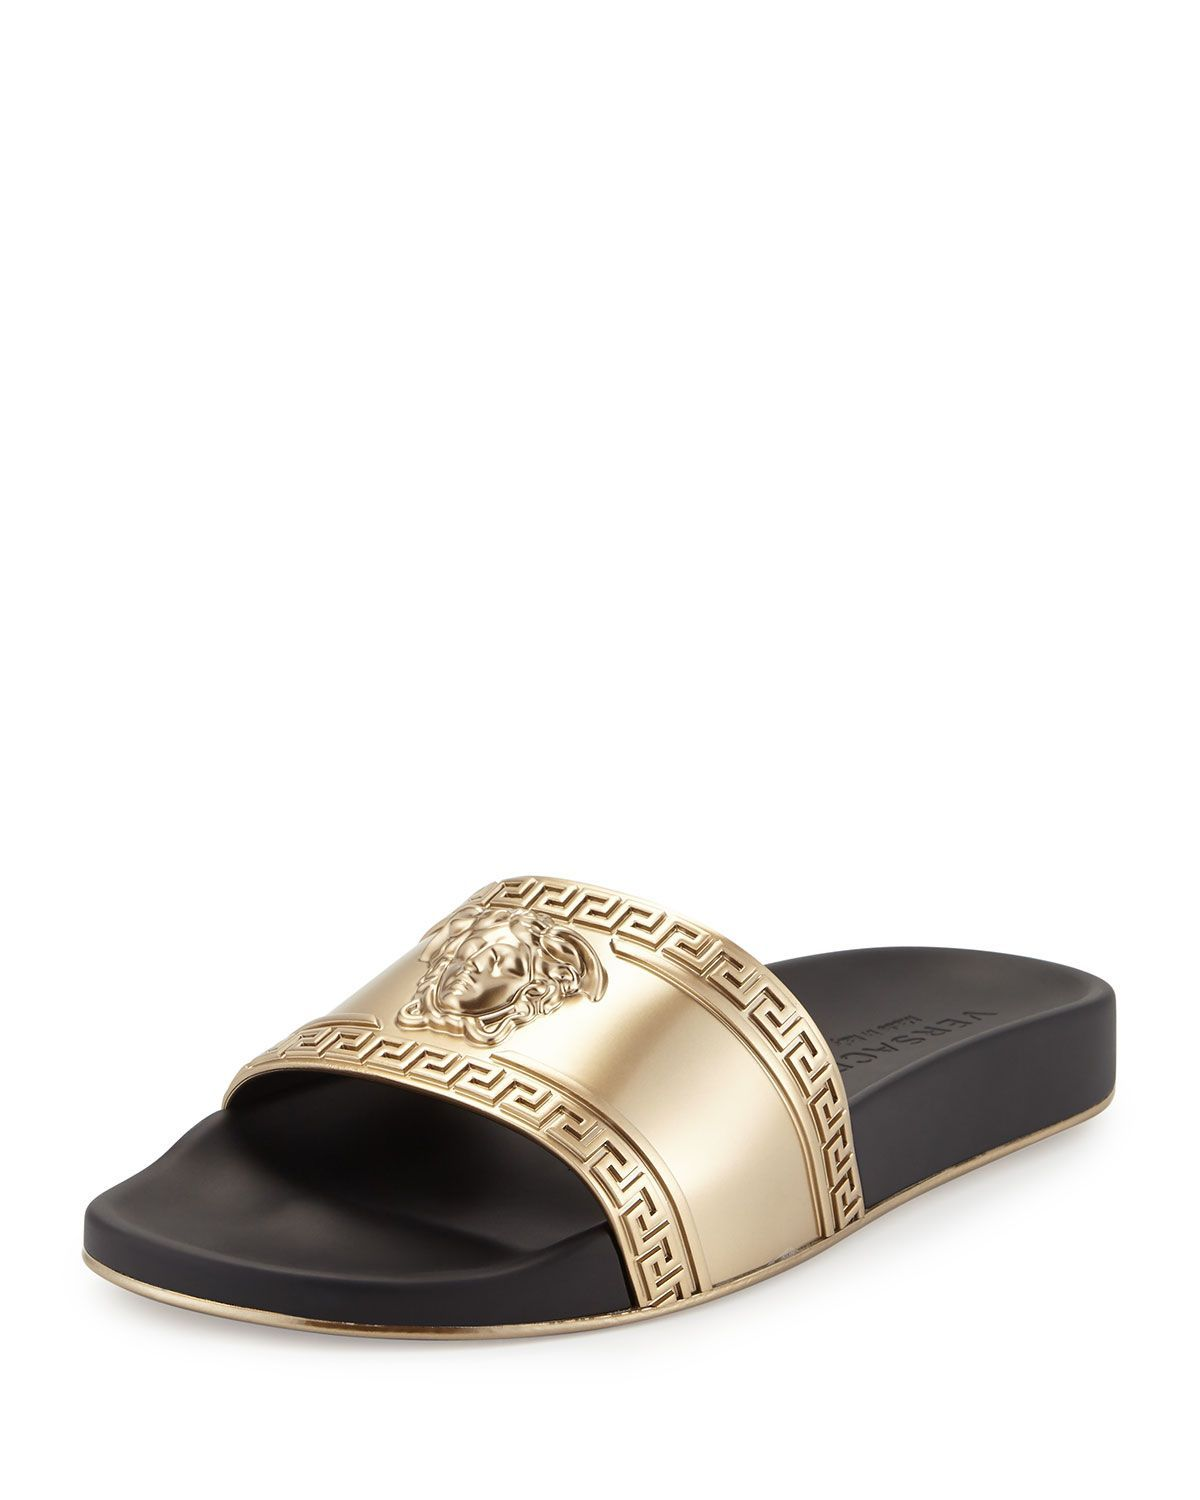 de50762ae7d833 Metallic Medusa-Head Slide Sandal